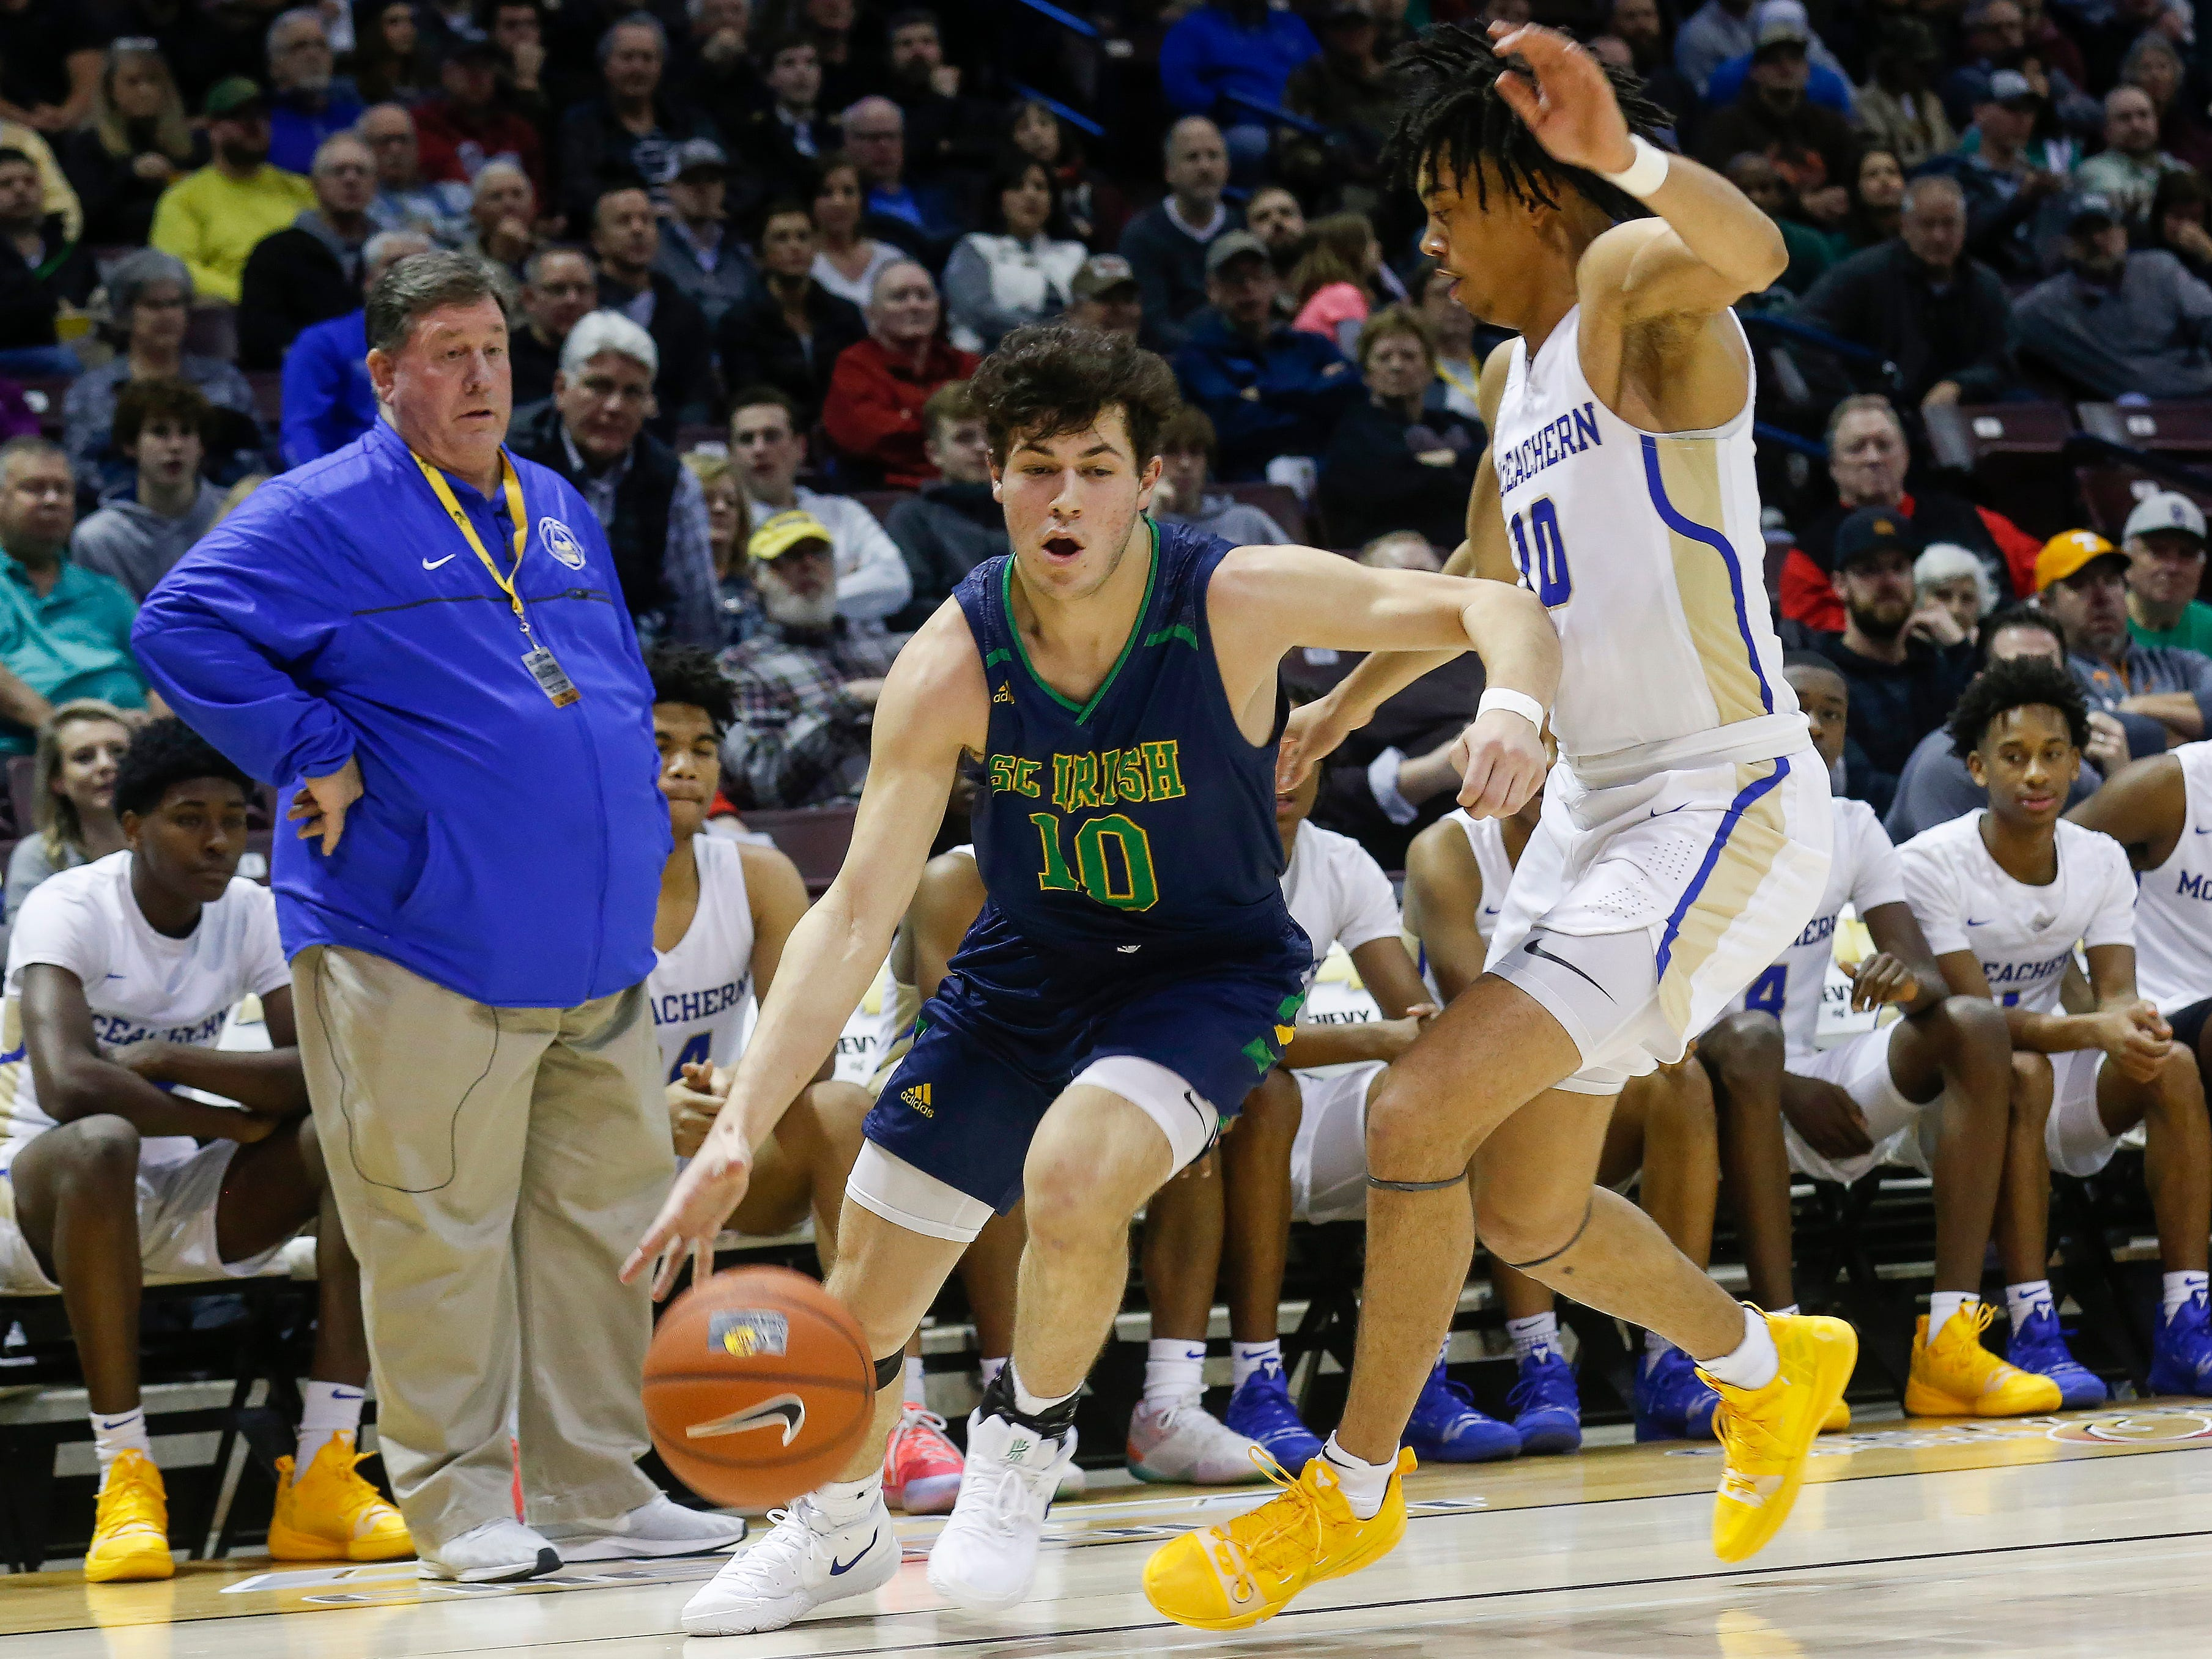 Mike Manzardo, of Springfield Catholic, drives to the net during the Irish's  game against McEachern at the Bass Pro Shops Tournament of Champions at JQH Arena on Thursday, Jan. 17, 2019.